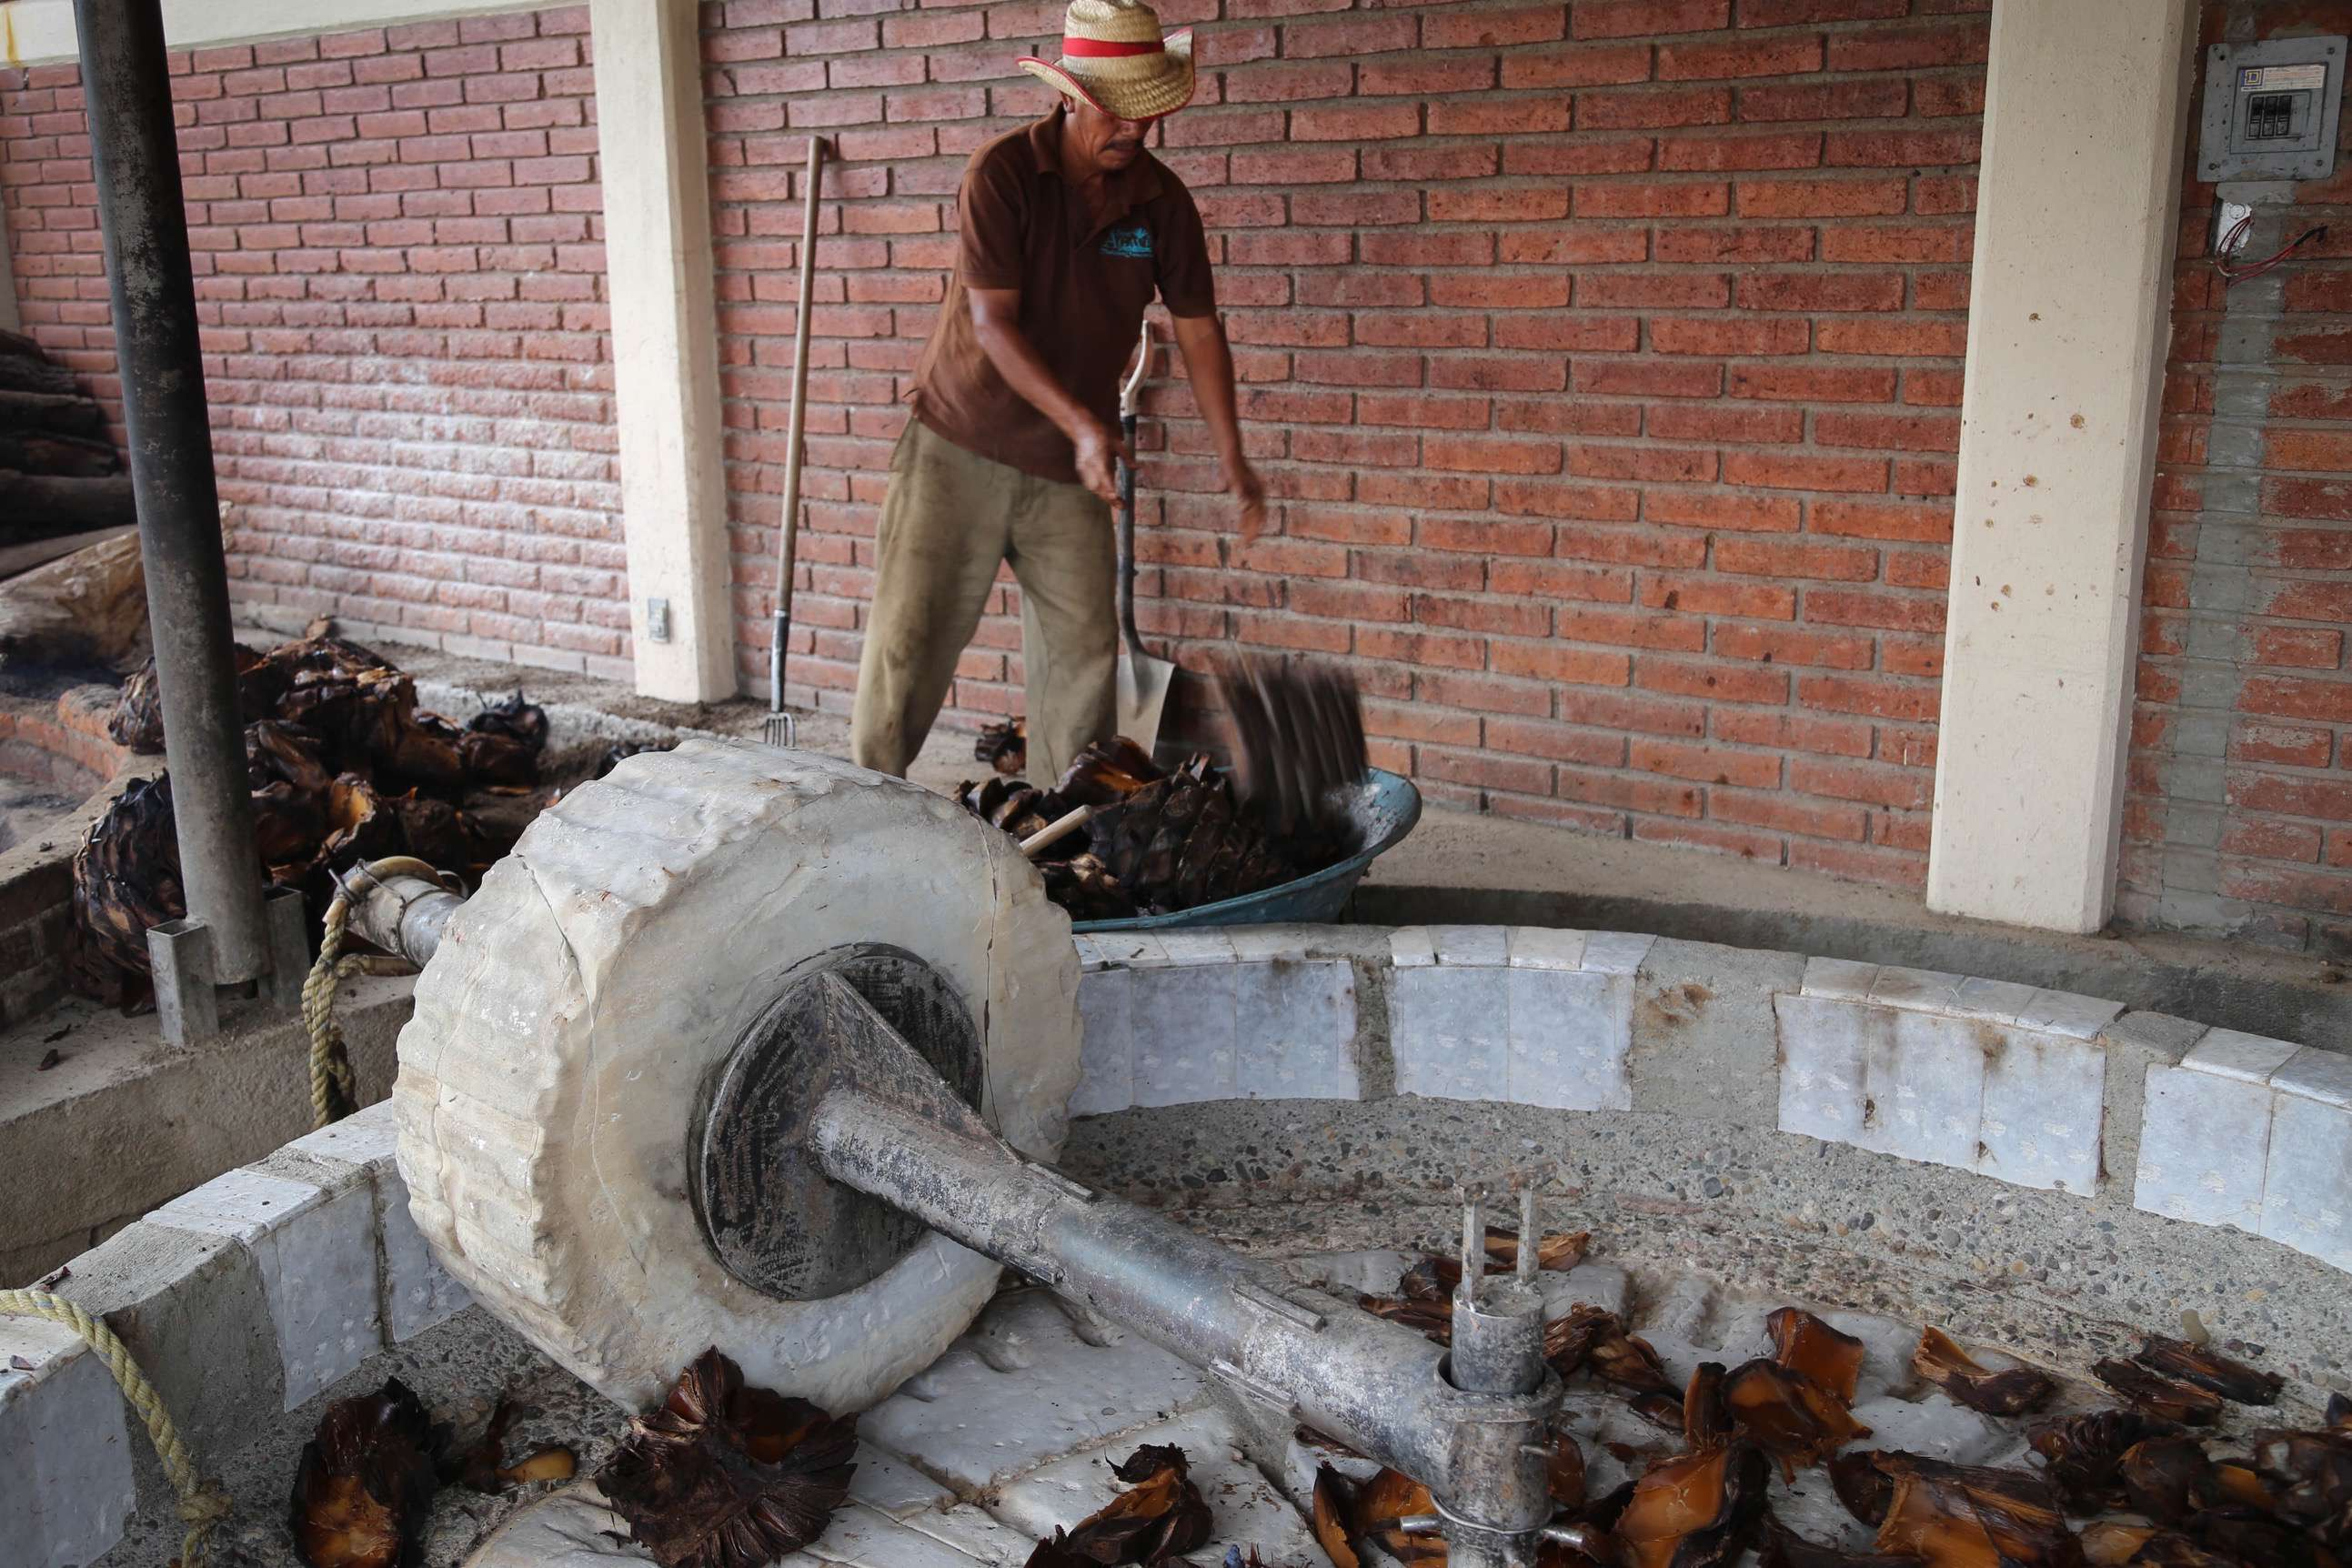 Piñas that have been properly roasted are then tossed into the press, where an animal will walk around outside, pulling the pressing stone to extract the juice.